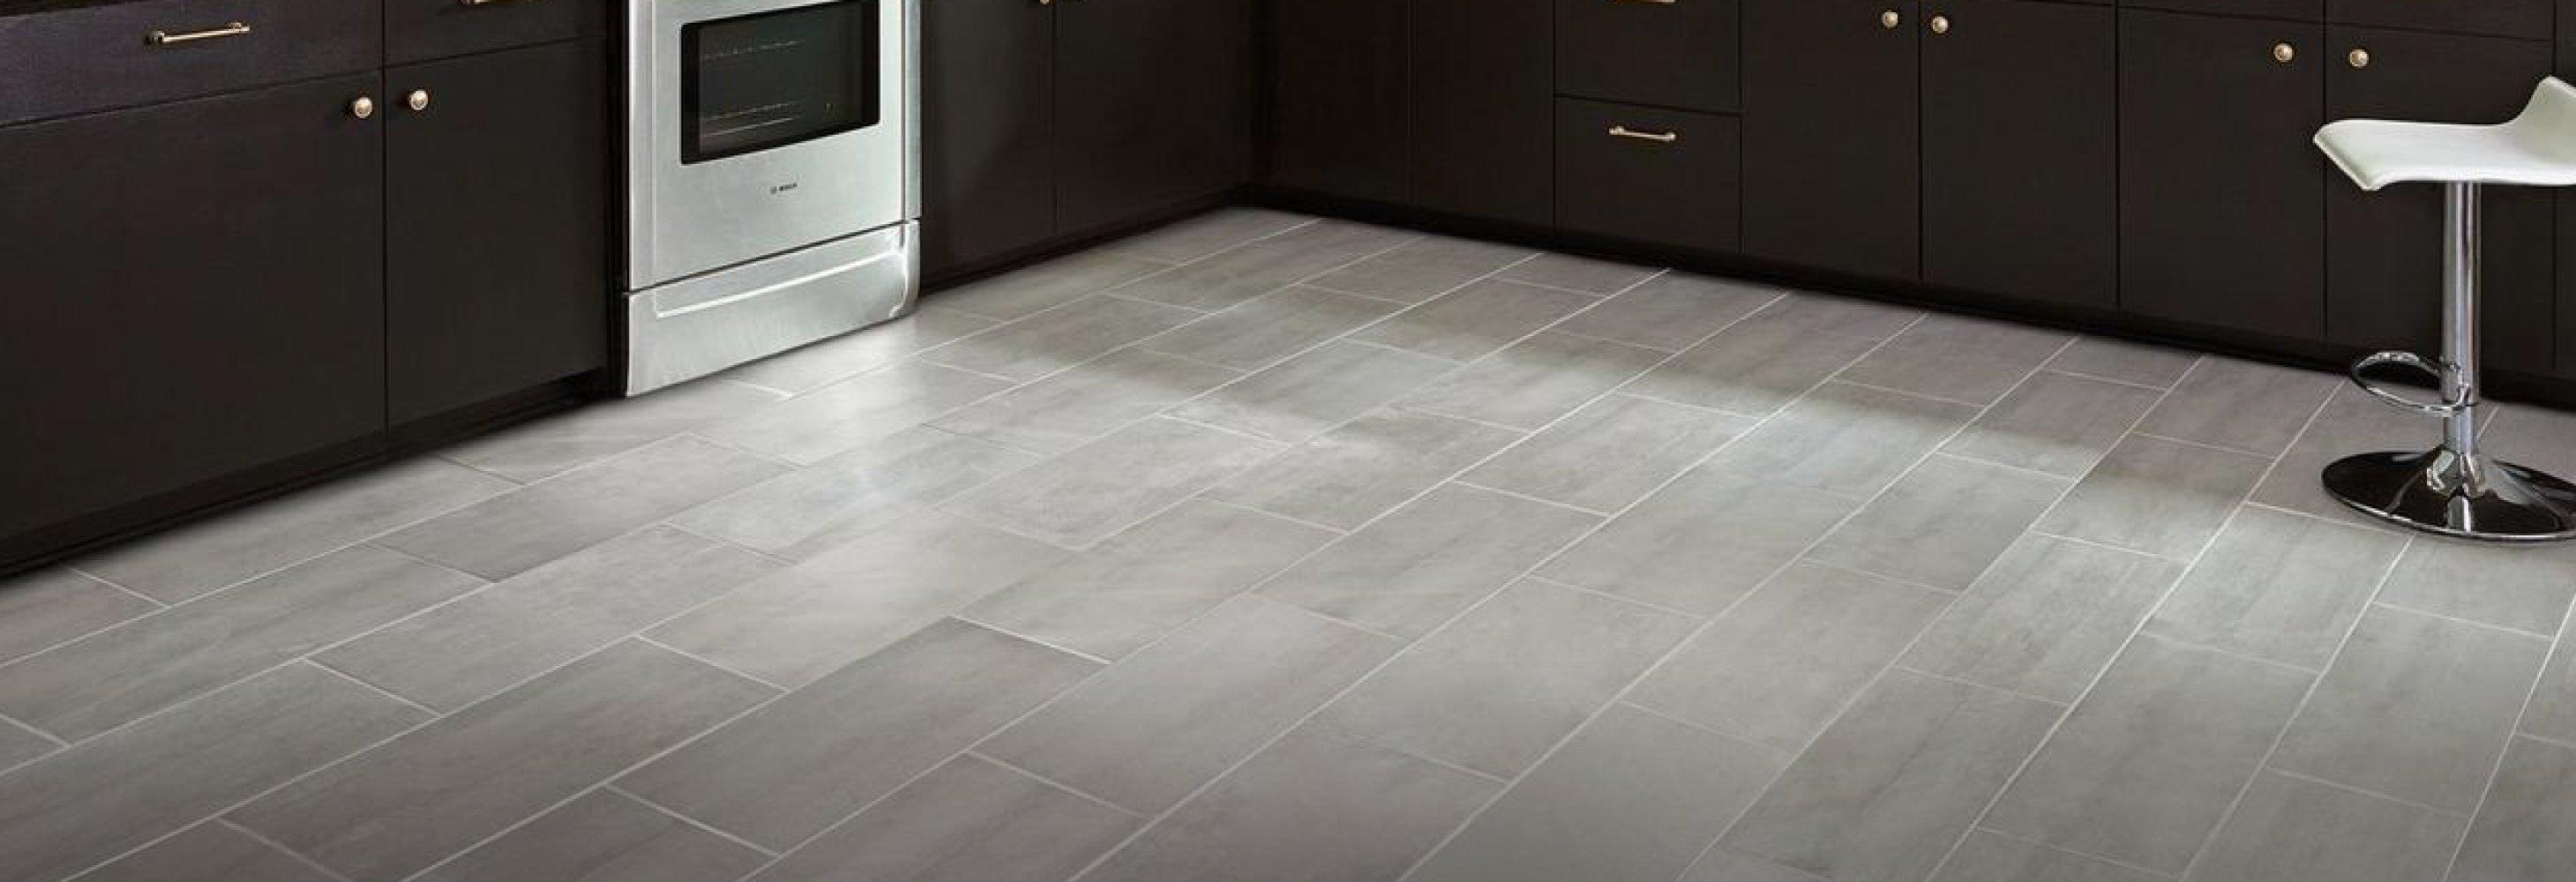 Superior Kitchen Tile